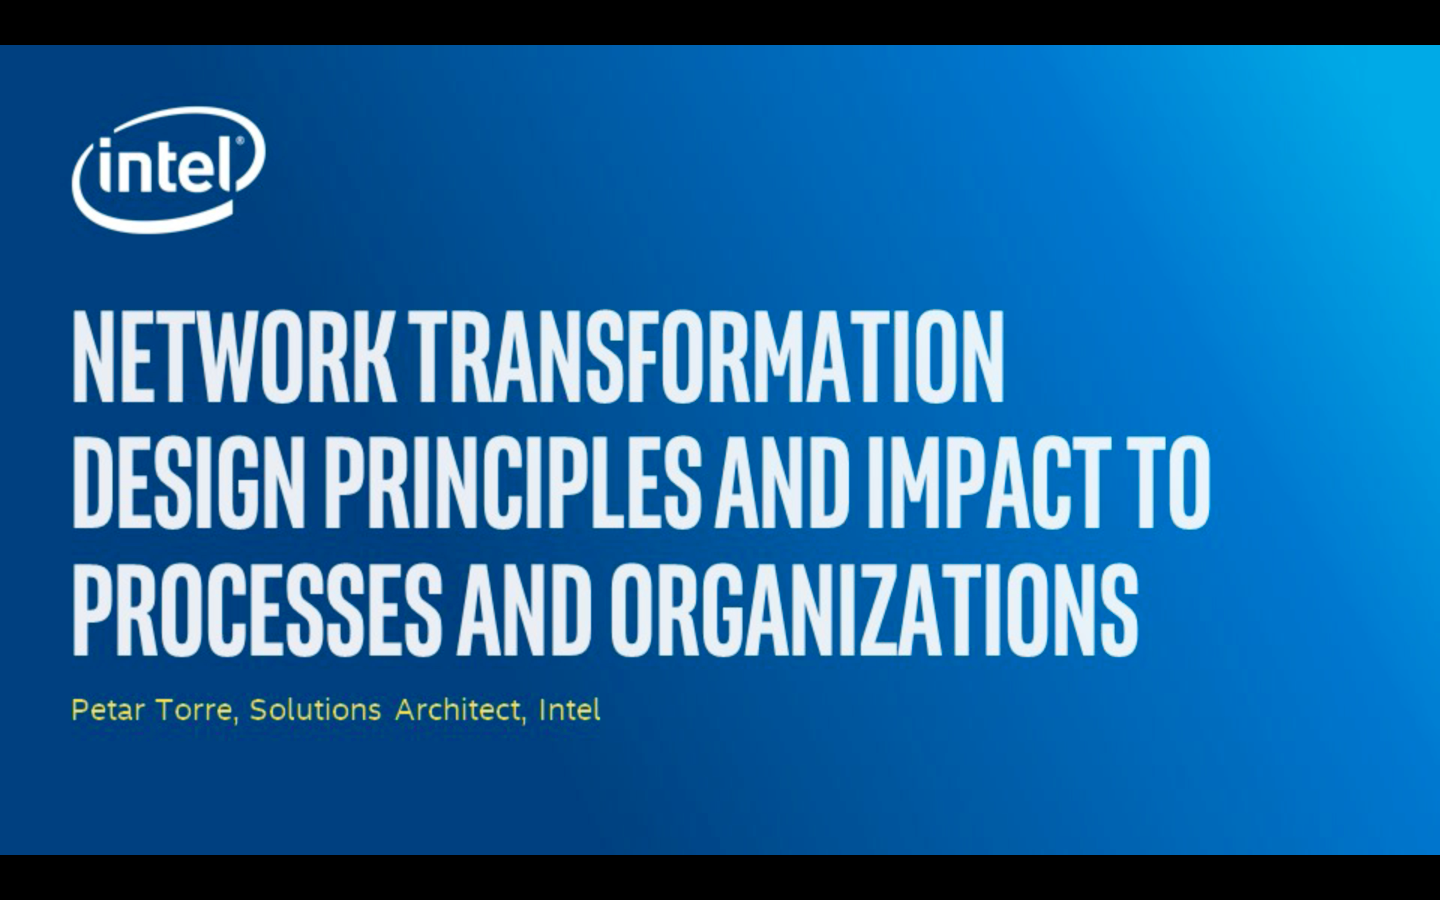 Chapter 1: Network Transformation Design Principles and Impact to Processes and Organizations